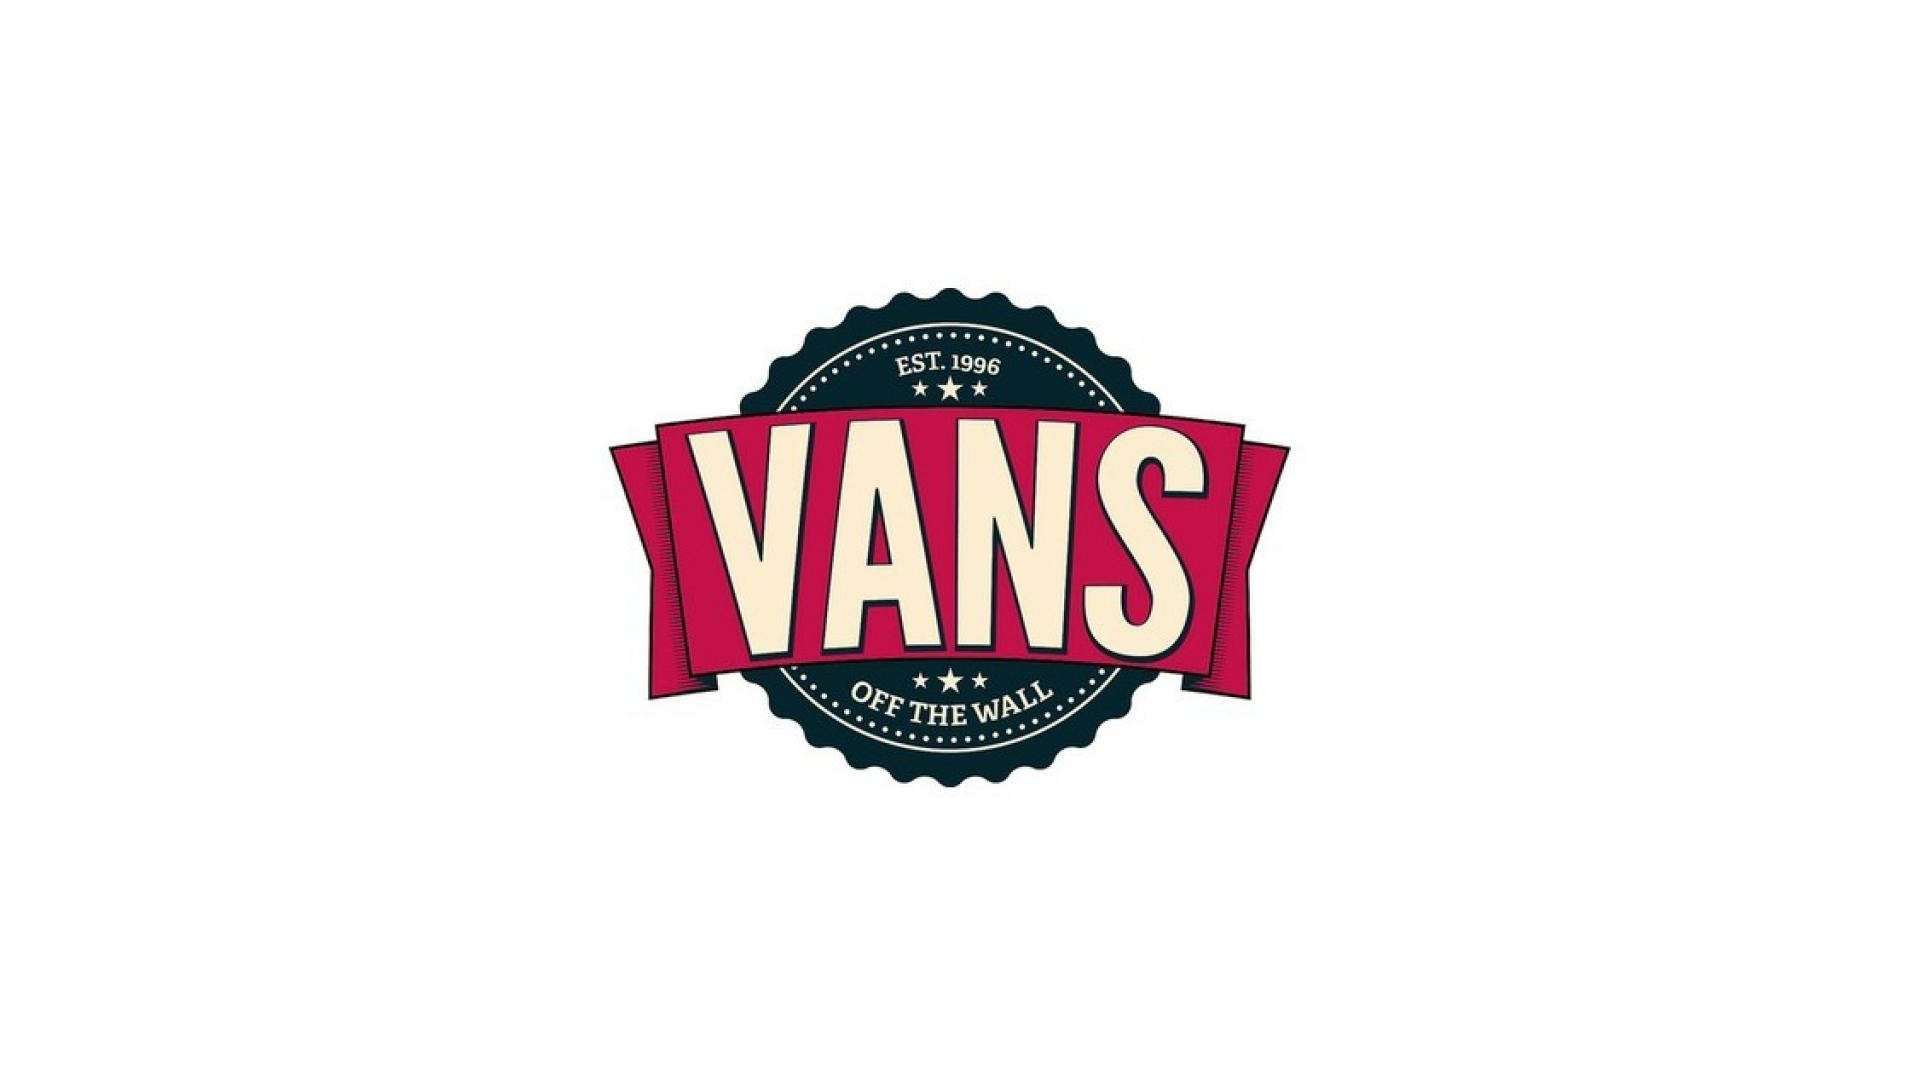 Old Iphone Wallpapers Vans Off The Wall Wallpaper 183 ①